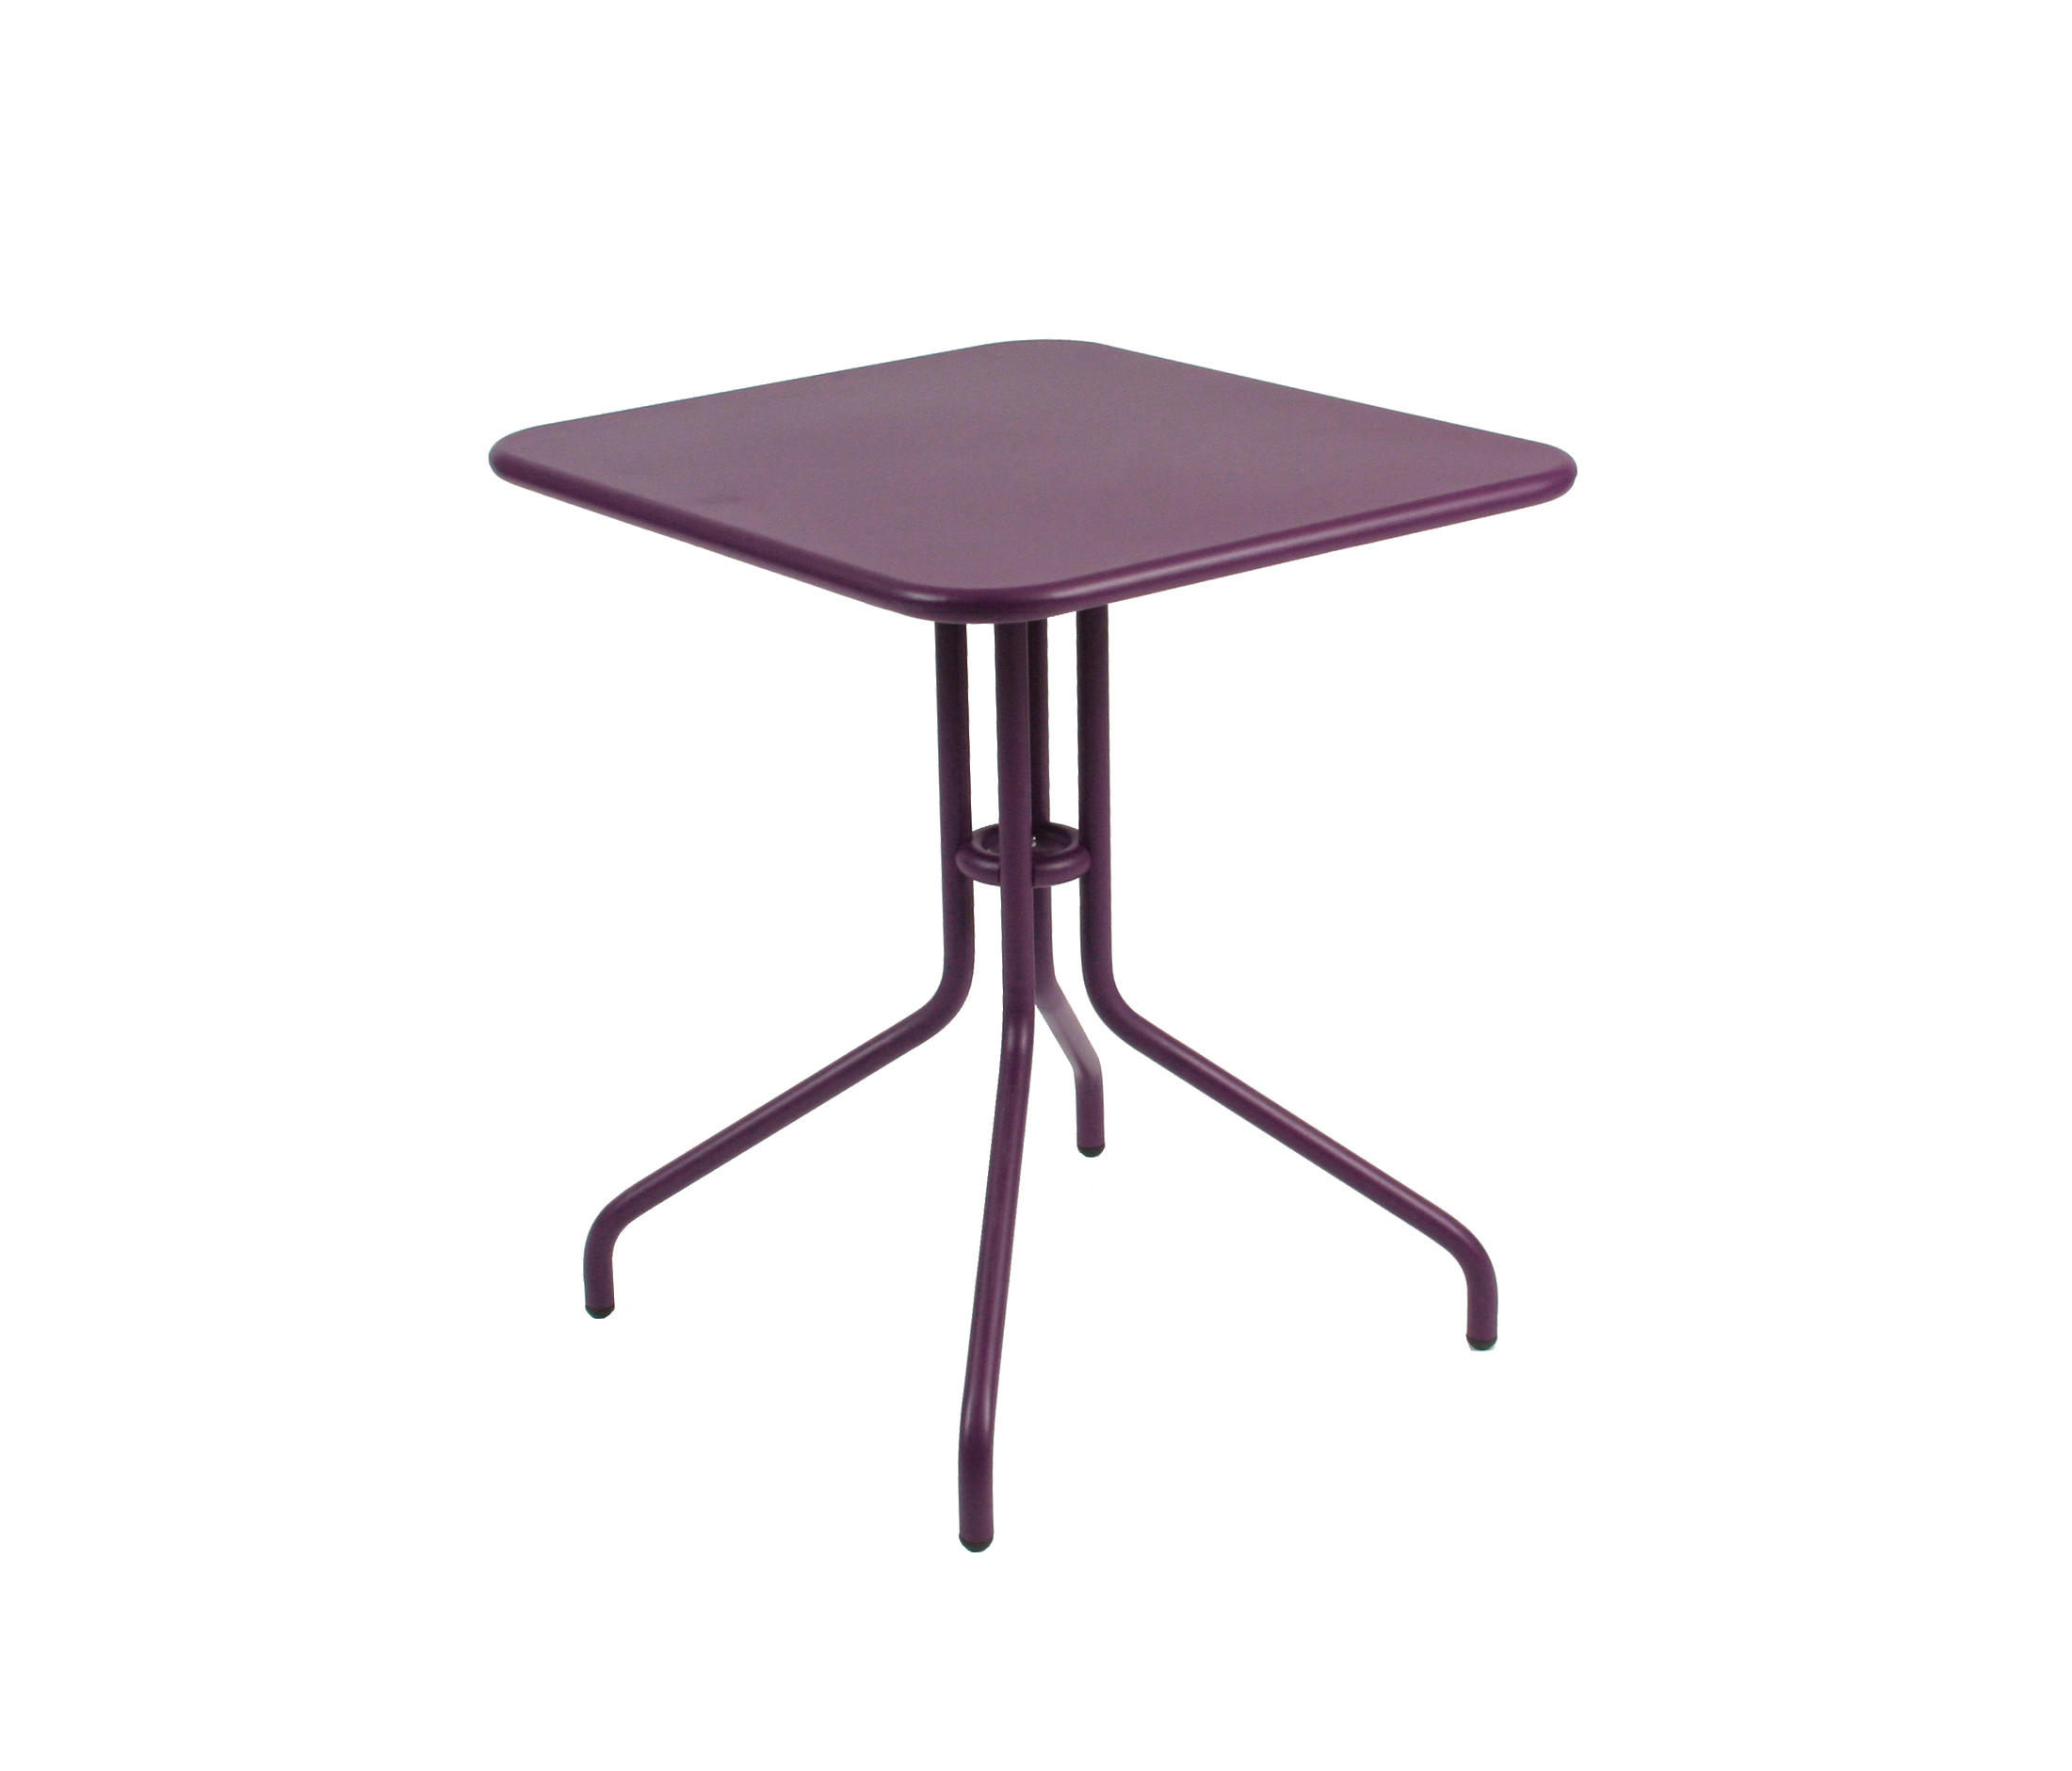 p tale table 110x70cm cafeteria tables from fermob. Black Bedroom Furniture Sets. Home Design Ideas